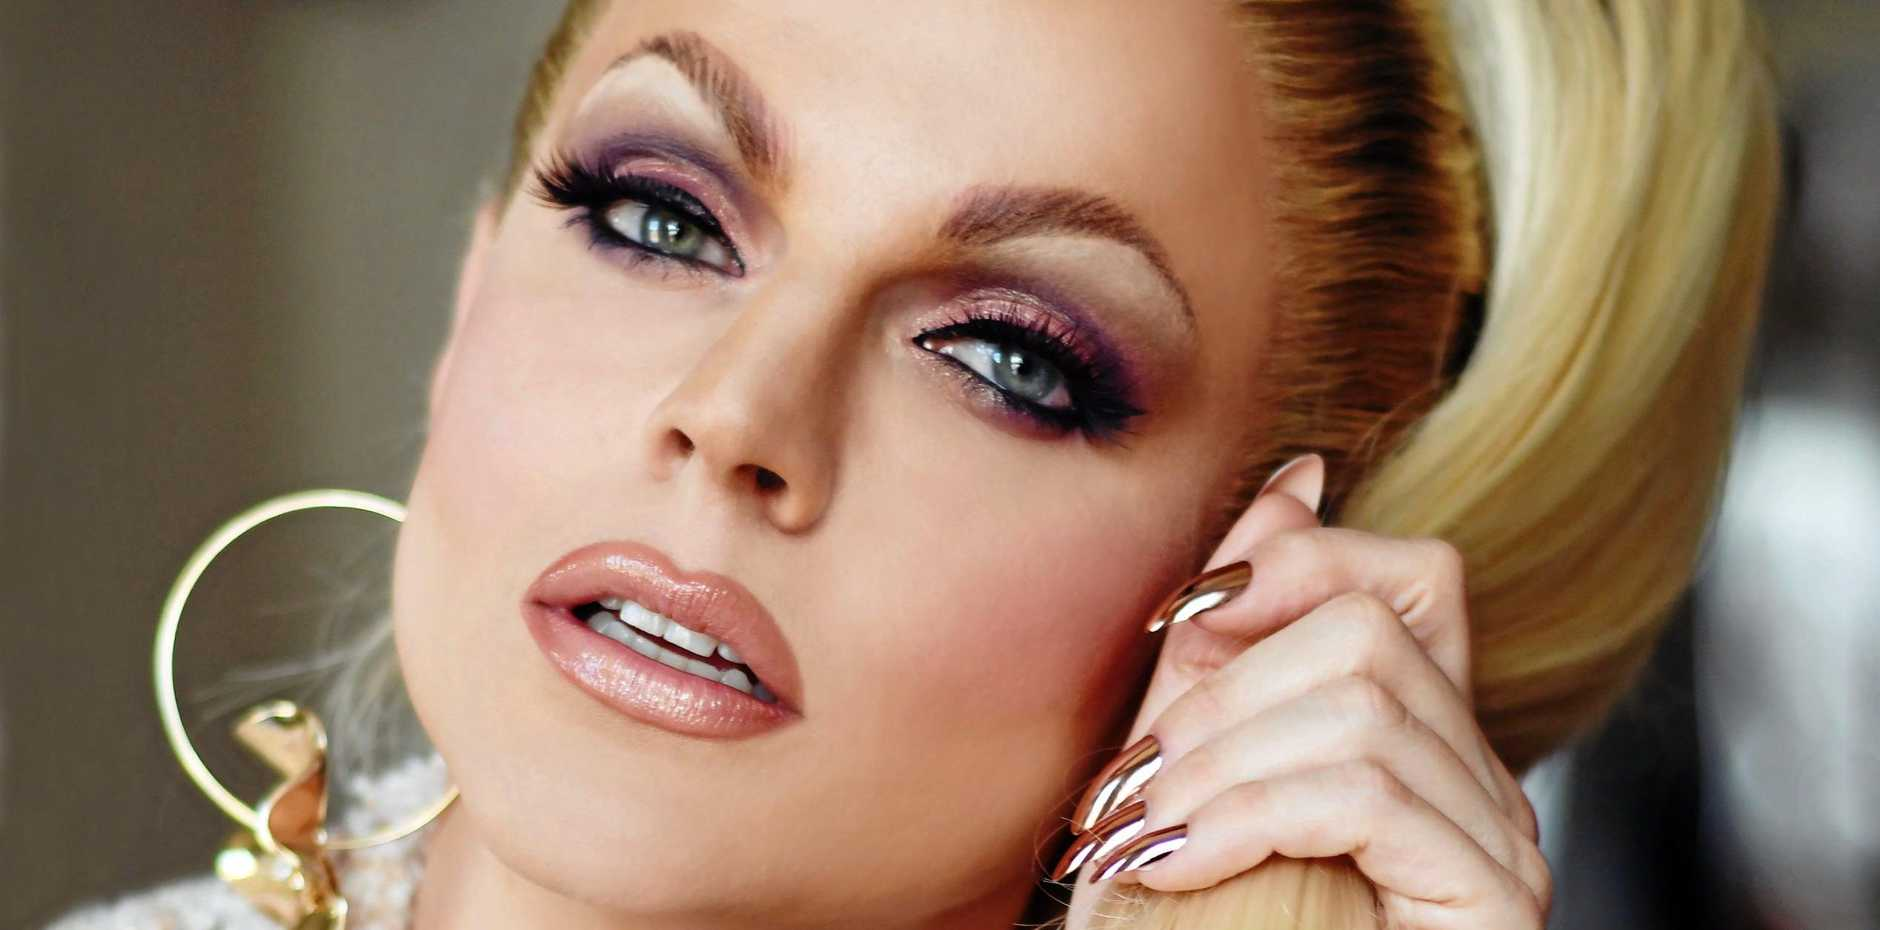 BEAUTY KING: Shane Jenek, also known as Courtney Act, is an Australian drag queen, pop singer, entertainer and reality television personality.